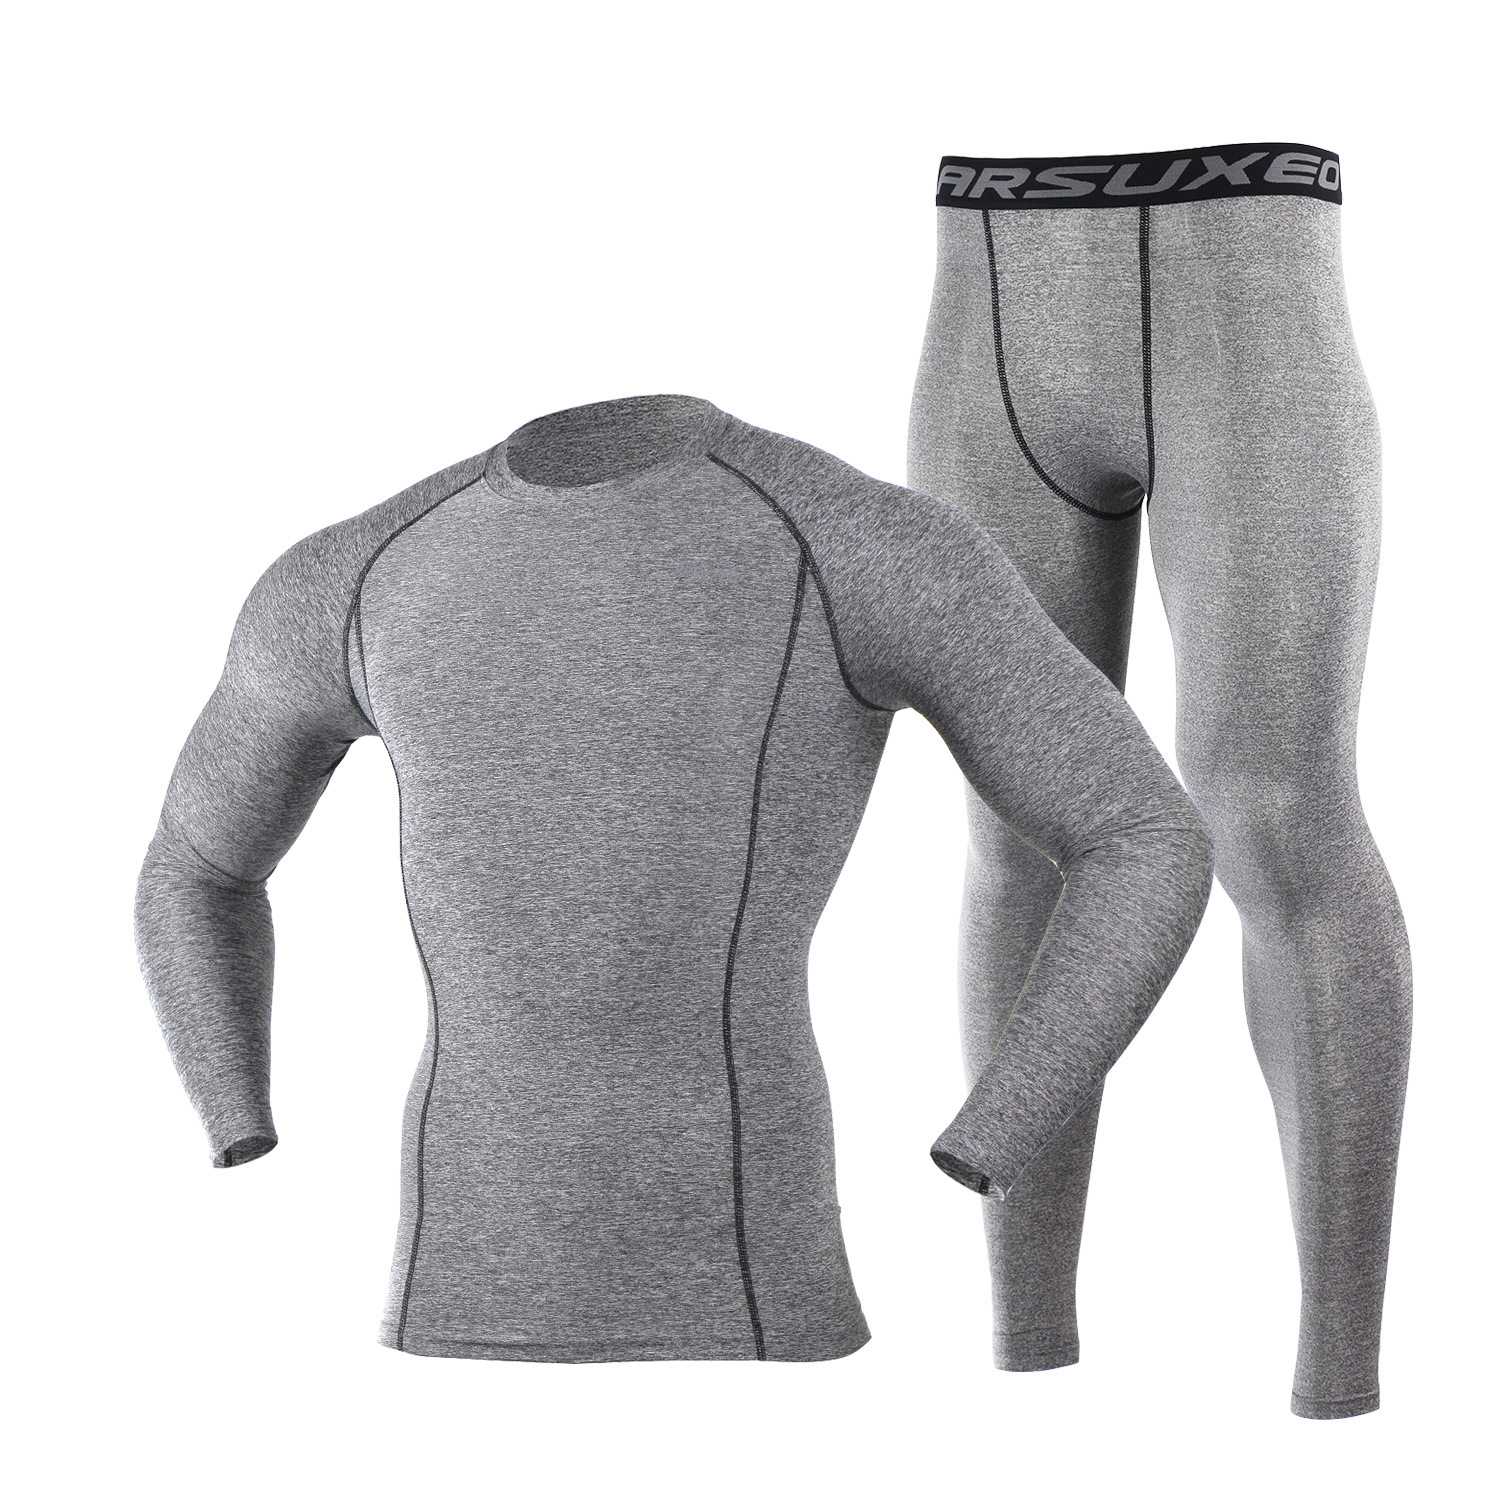 Image 4 - ARSUXEO Mens Compression Set for Running Jogging Sports Gym Fitness Tights Workout Crossfit Suits Long Shirt and Leggings Pants-in Running Sets from Sports & Entertainment on AliExpress